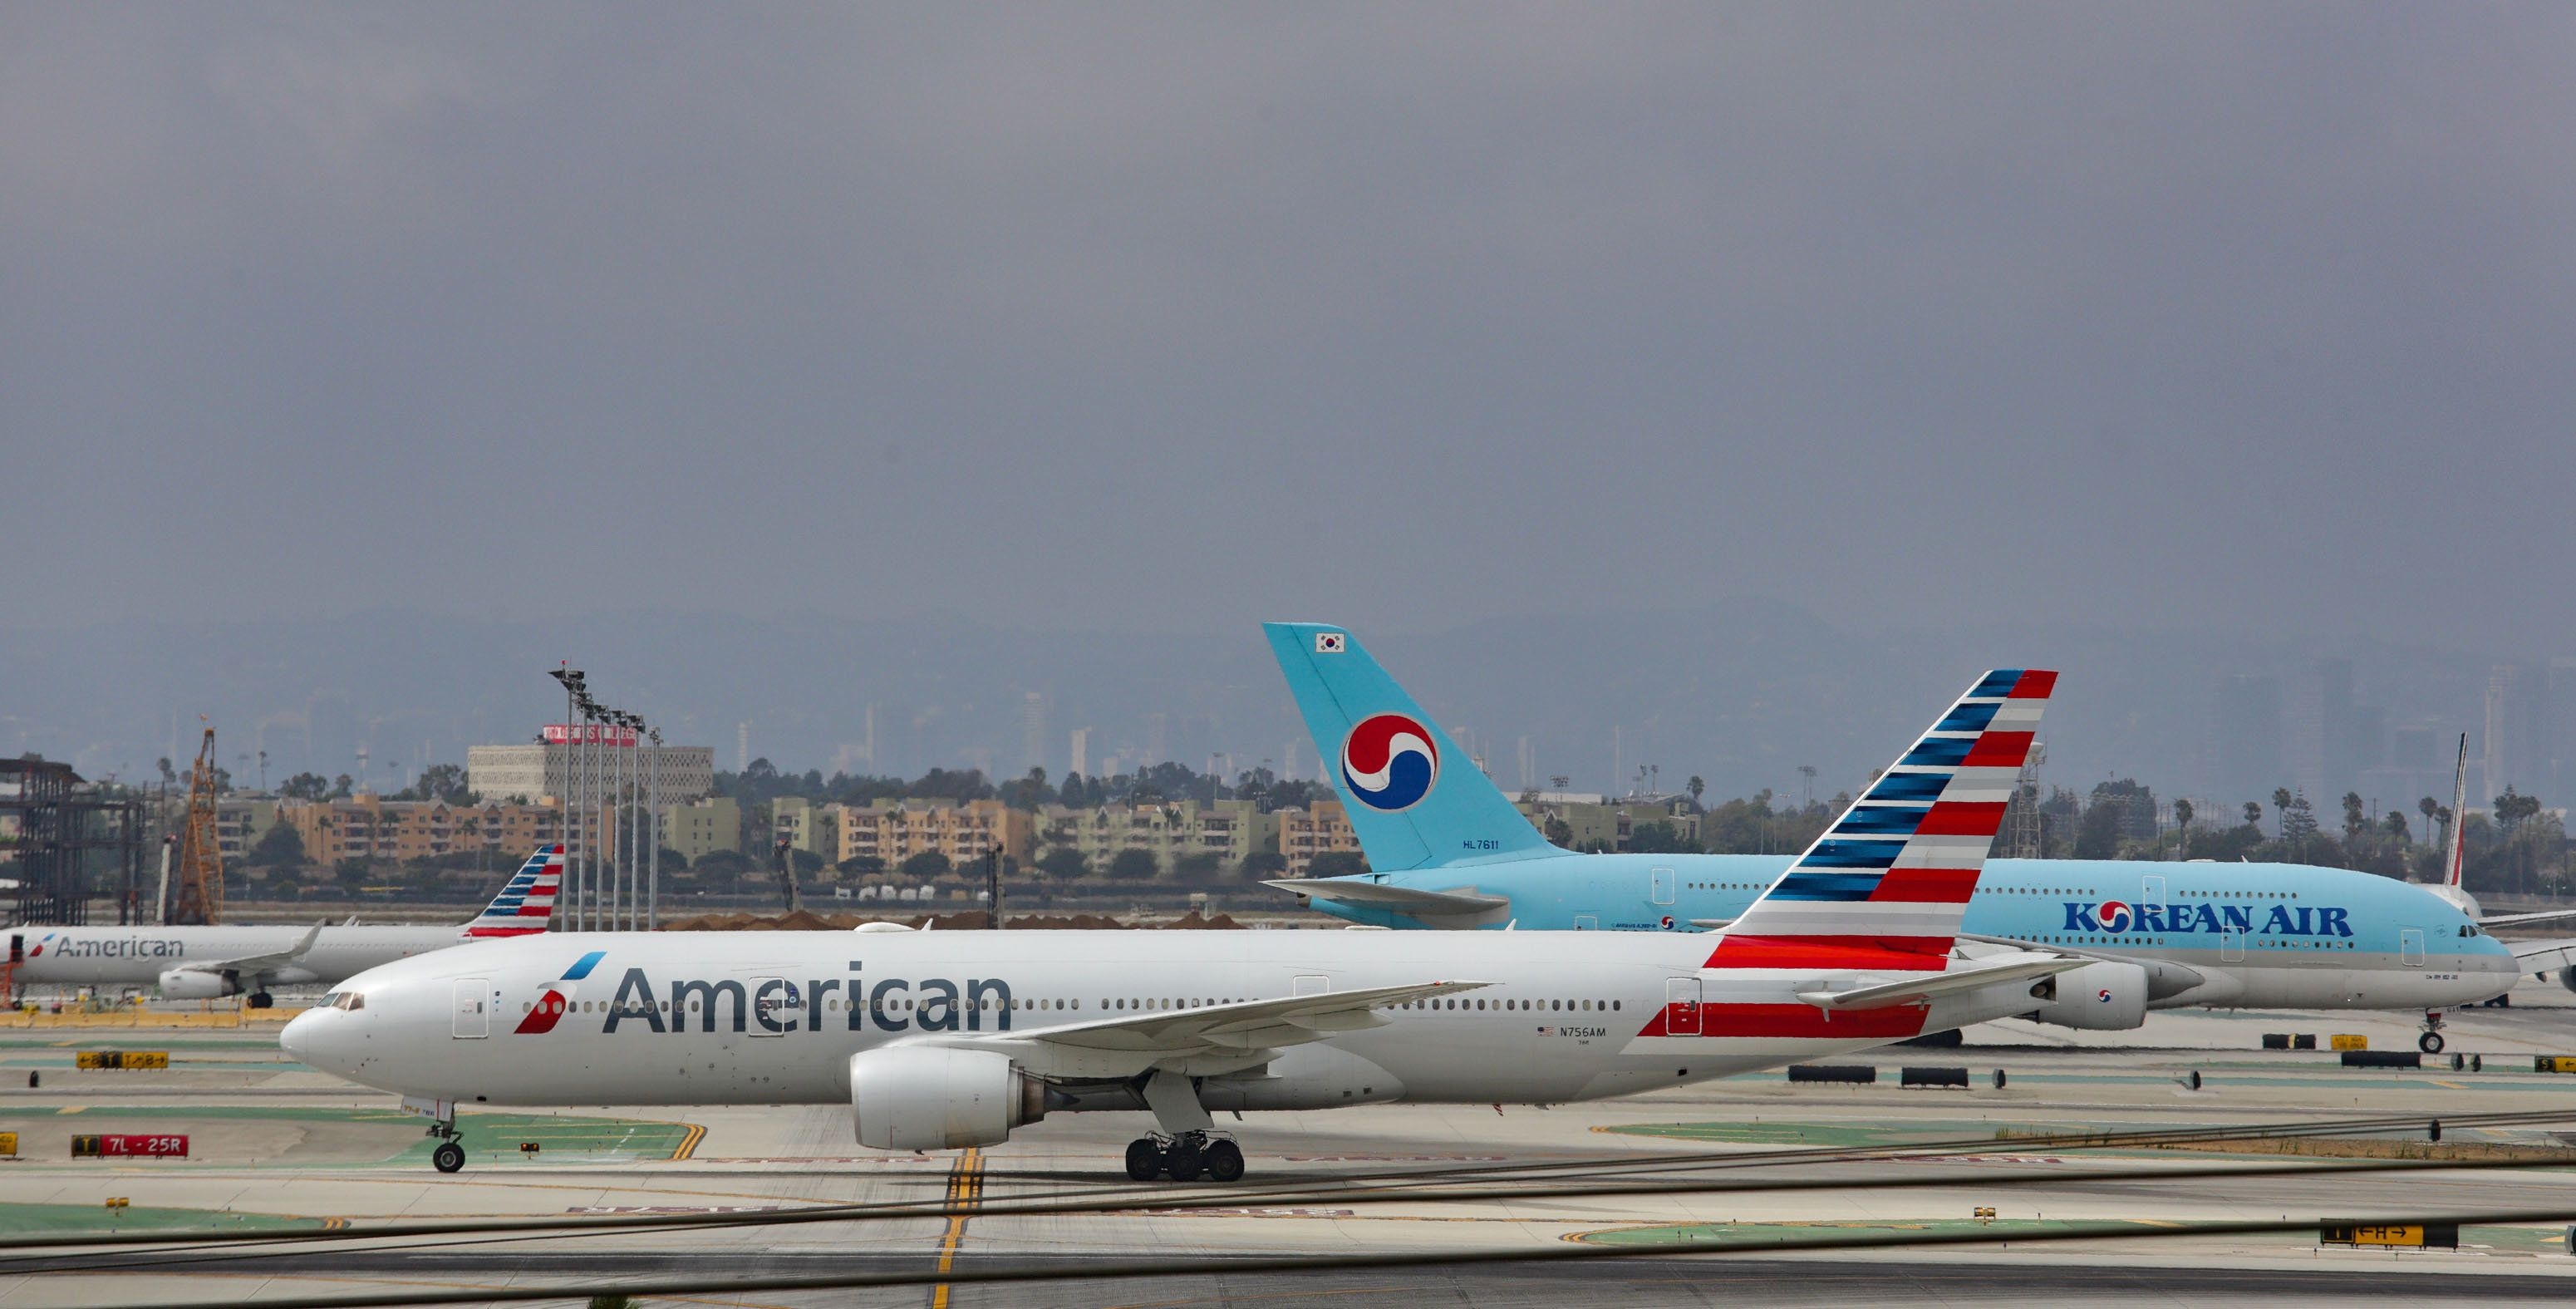 LOS ANGELES, CA - JULY 30: American Airlines Boeing 777 takes off from Los Angeles International Airport on July 30, 2017 in Los Angeles, California.  (Photo by FG/Bauer-Griffin/GC Images)